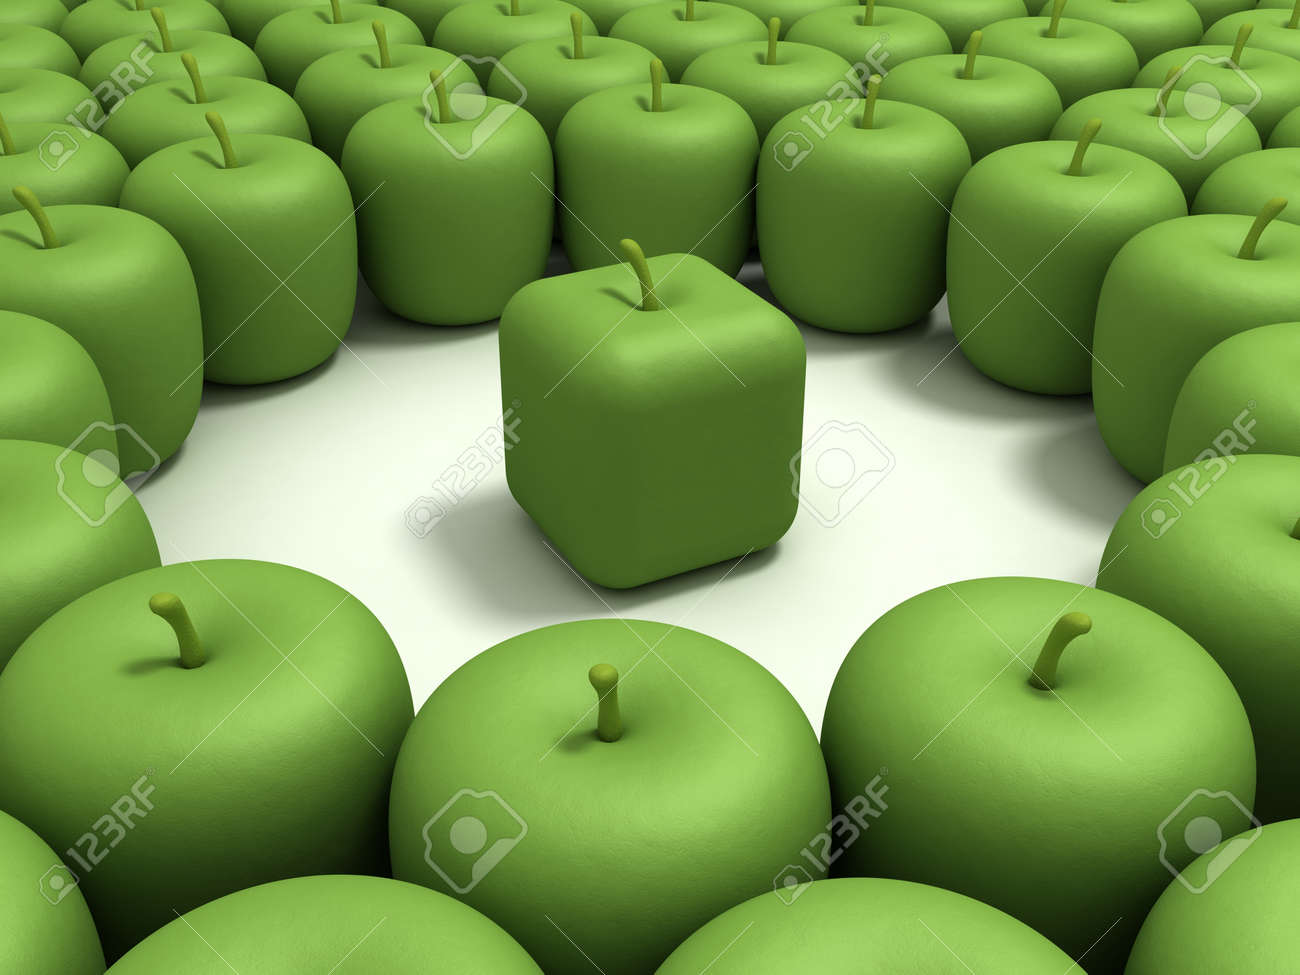 Green apple of the cubic form in an environment of usual green apples. Stock Photo - 11888030